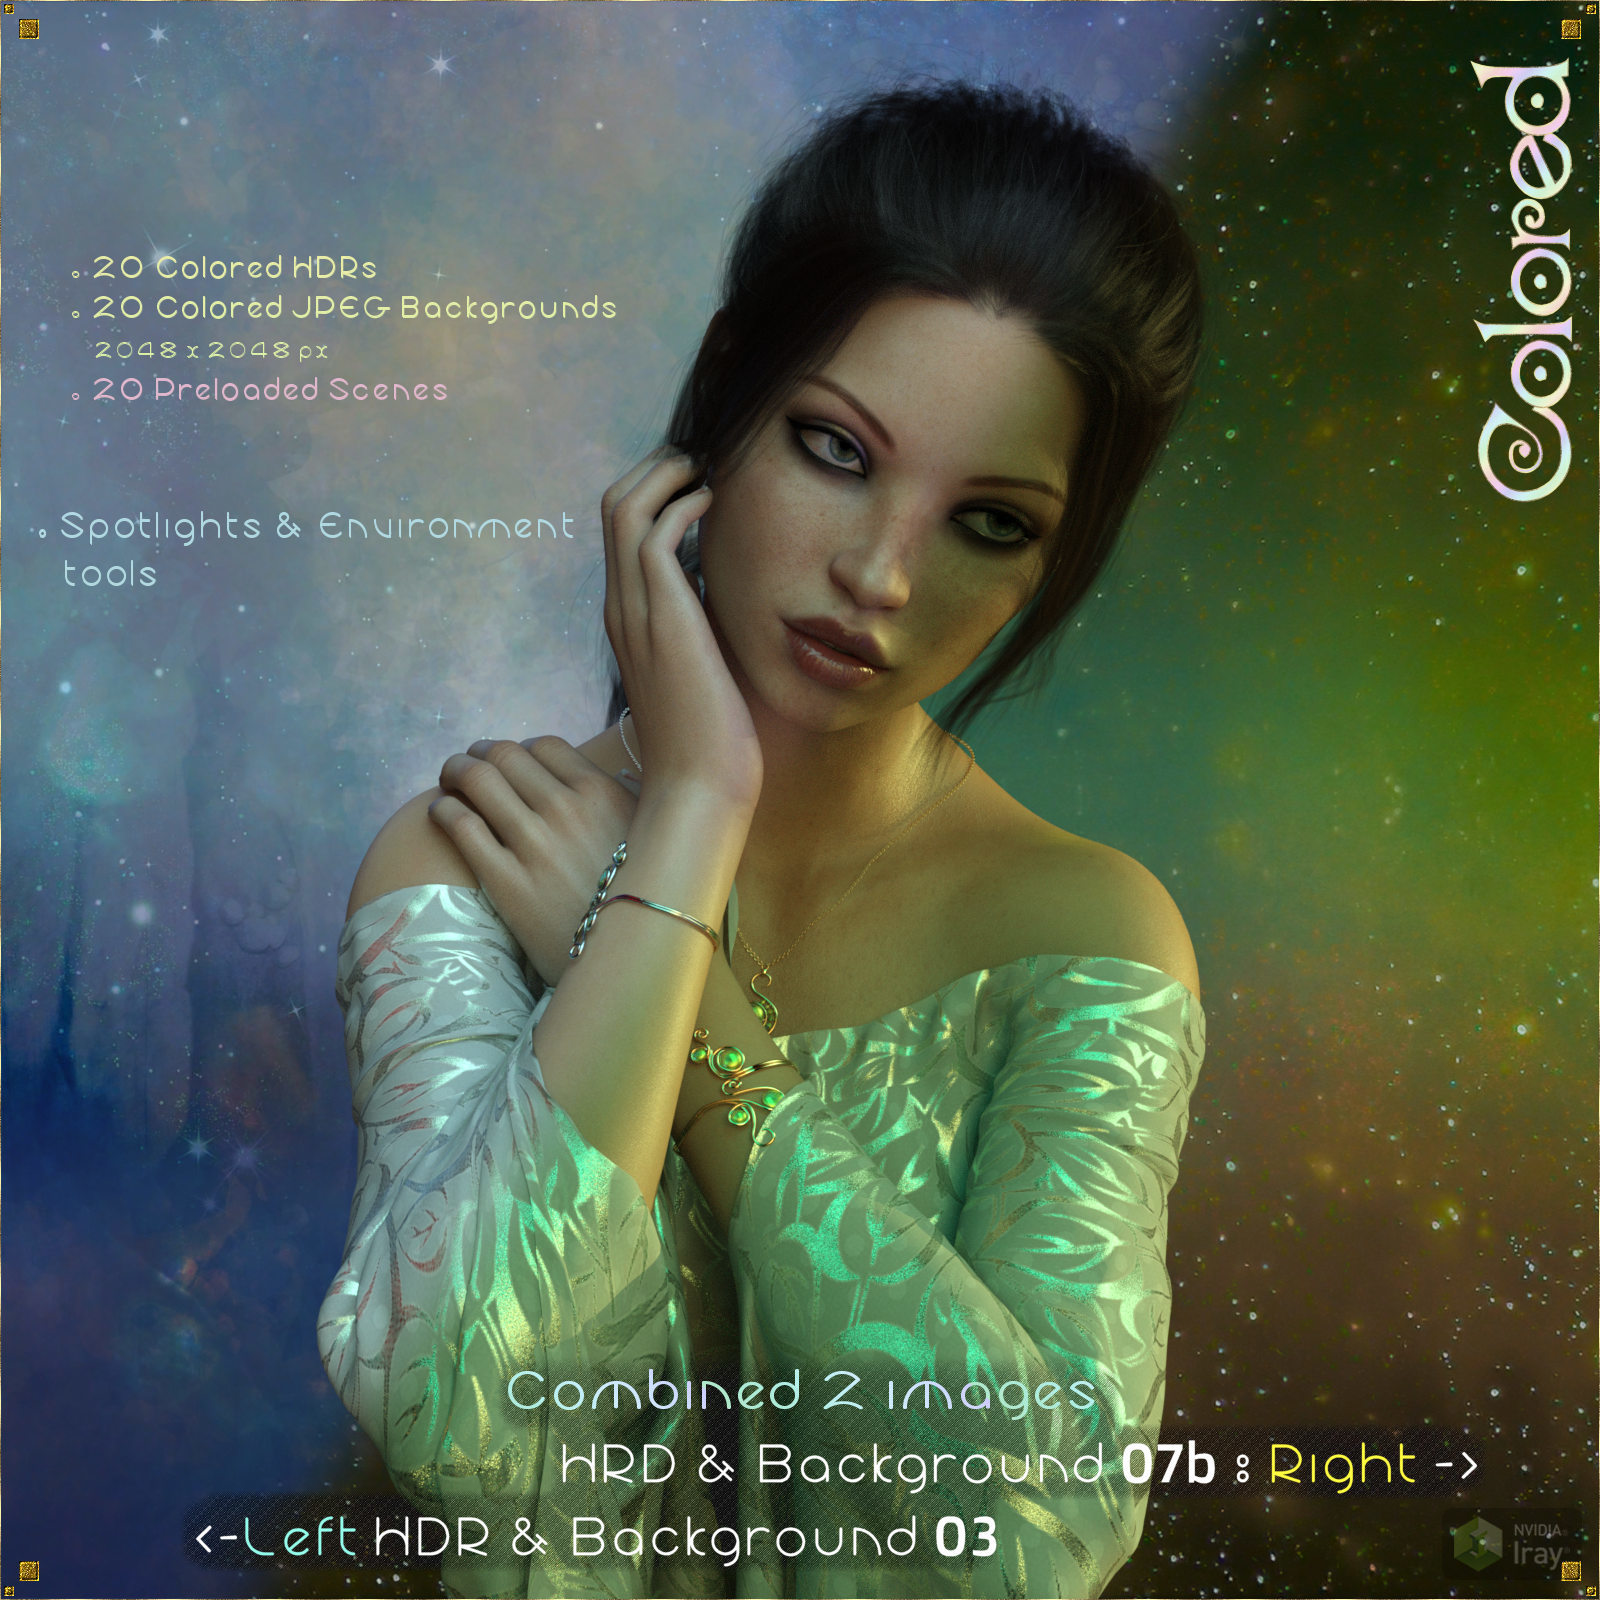 HDR & Backgrounds - Colored for DAZ Studio